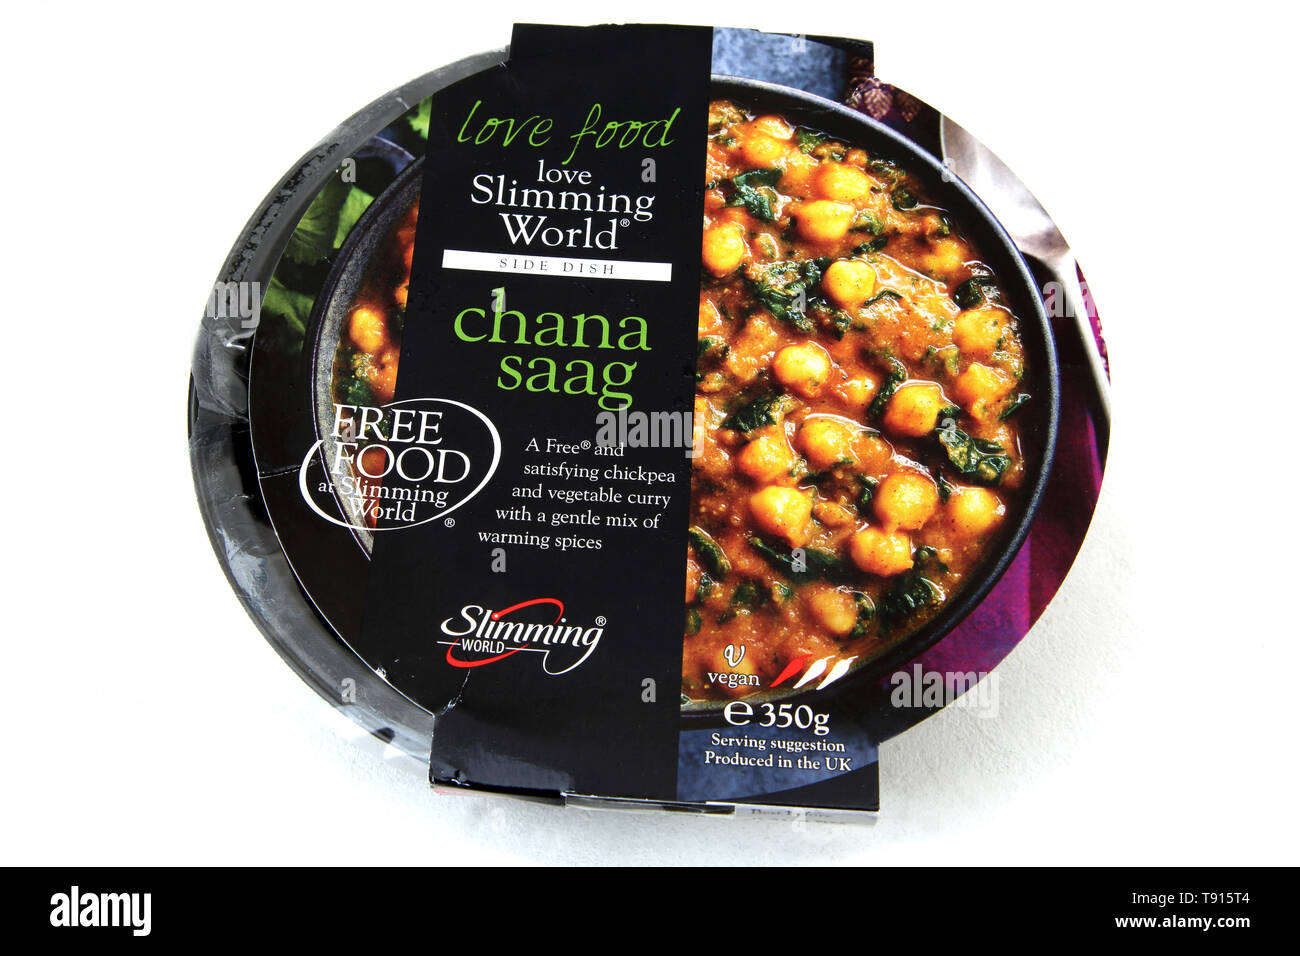 Slimming World Vegan Chana Saag Chickpea and Vegetable Curry - Stock Image